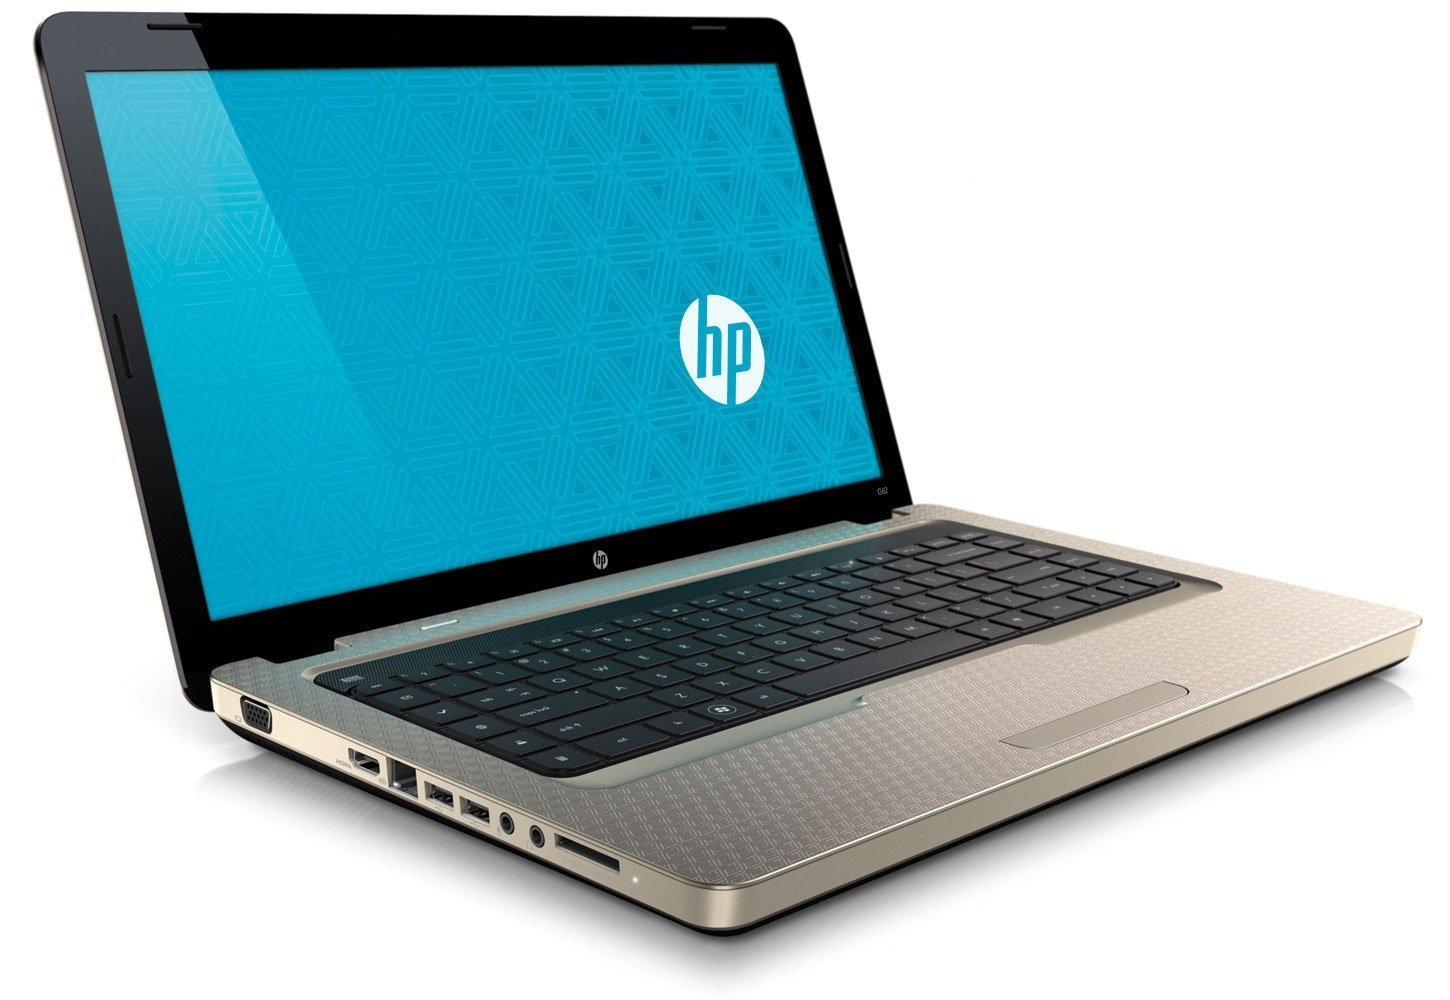 HP G62-343NR NOTEBOOK WINDOWS 8 X64 TREIBER